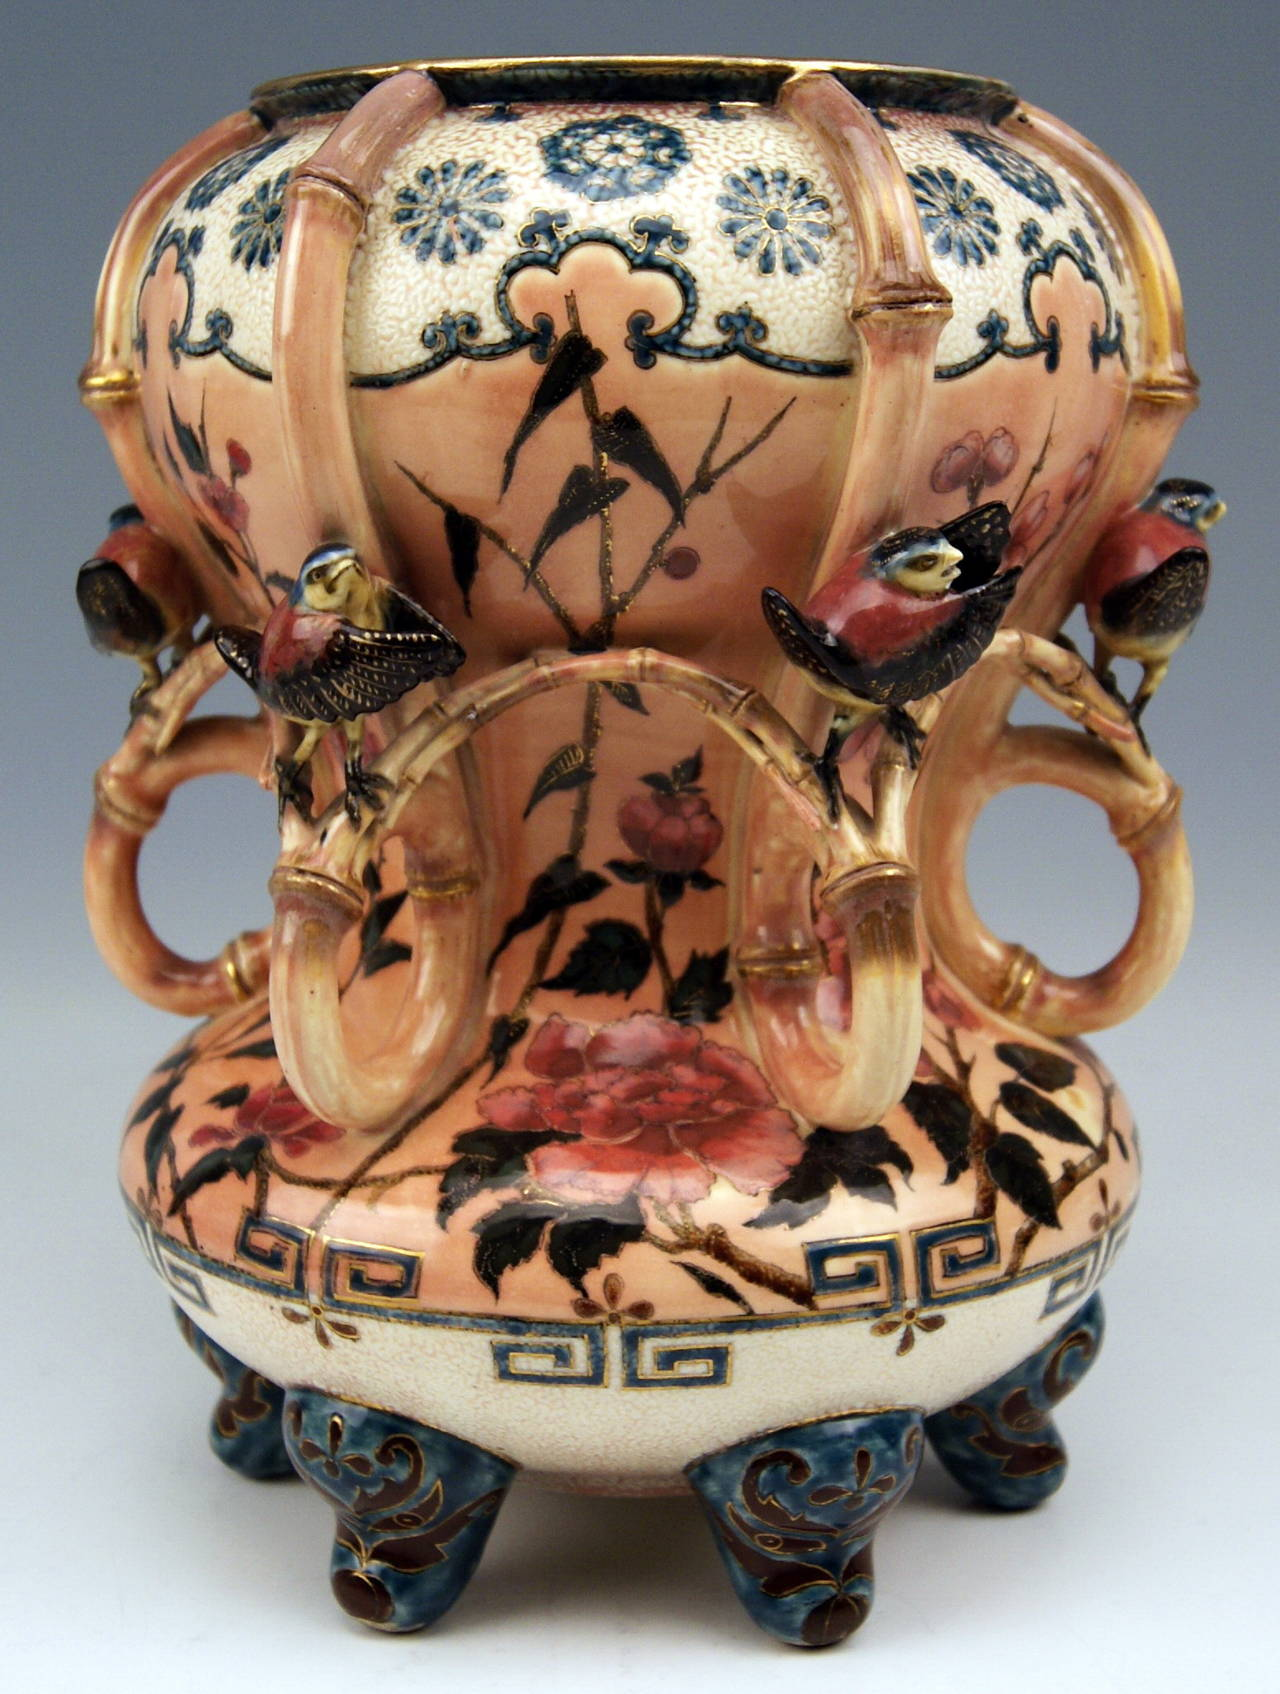 Zsolnay Vintage and Rare Vase with Birds Abundantly Decorated, circa 1882-1885 2